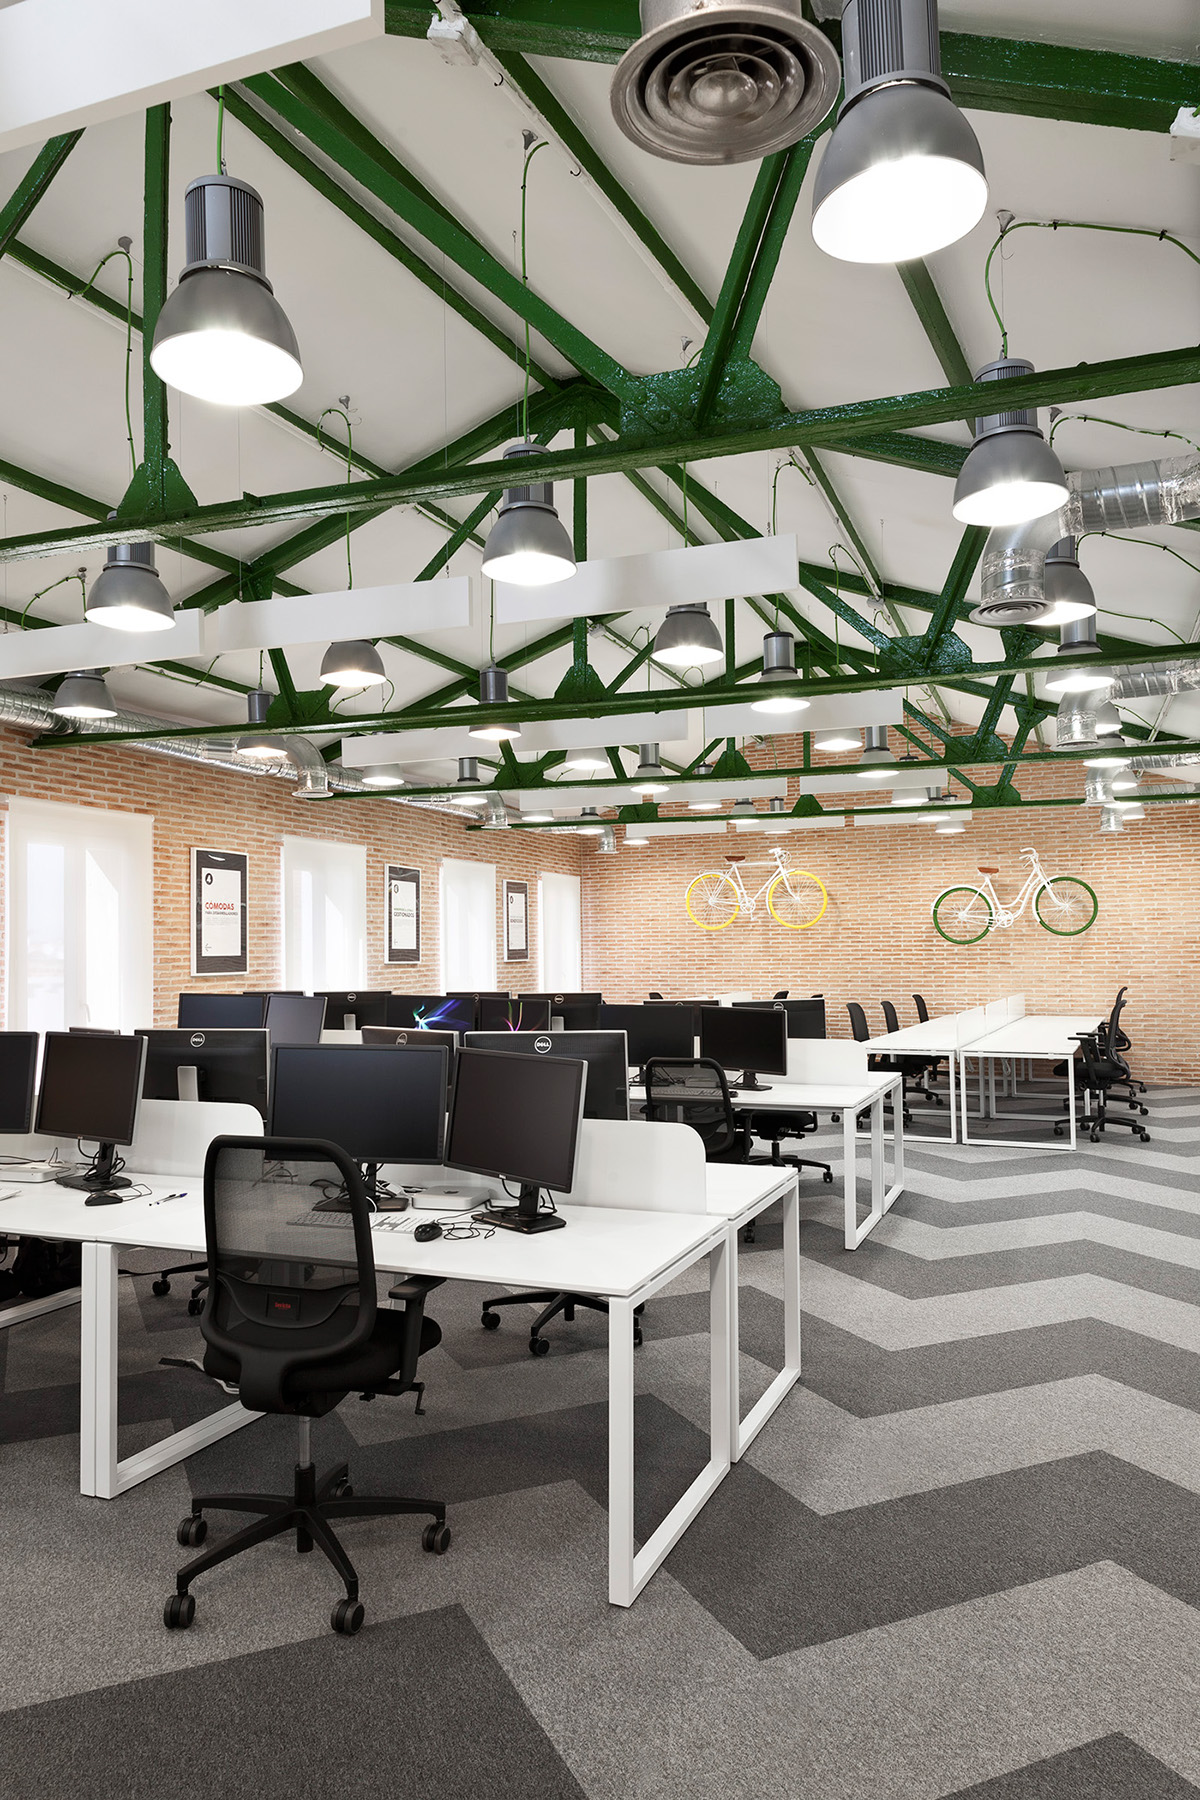 Office Ceiling Design Ideas